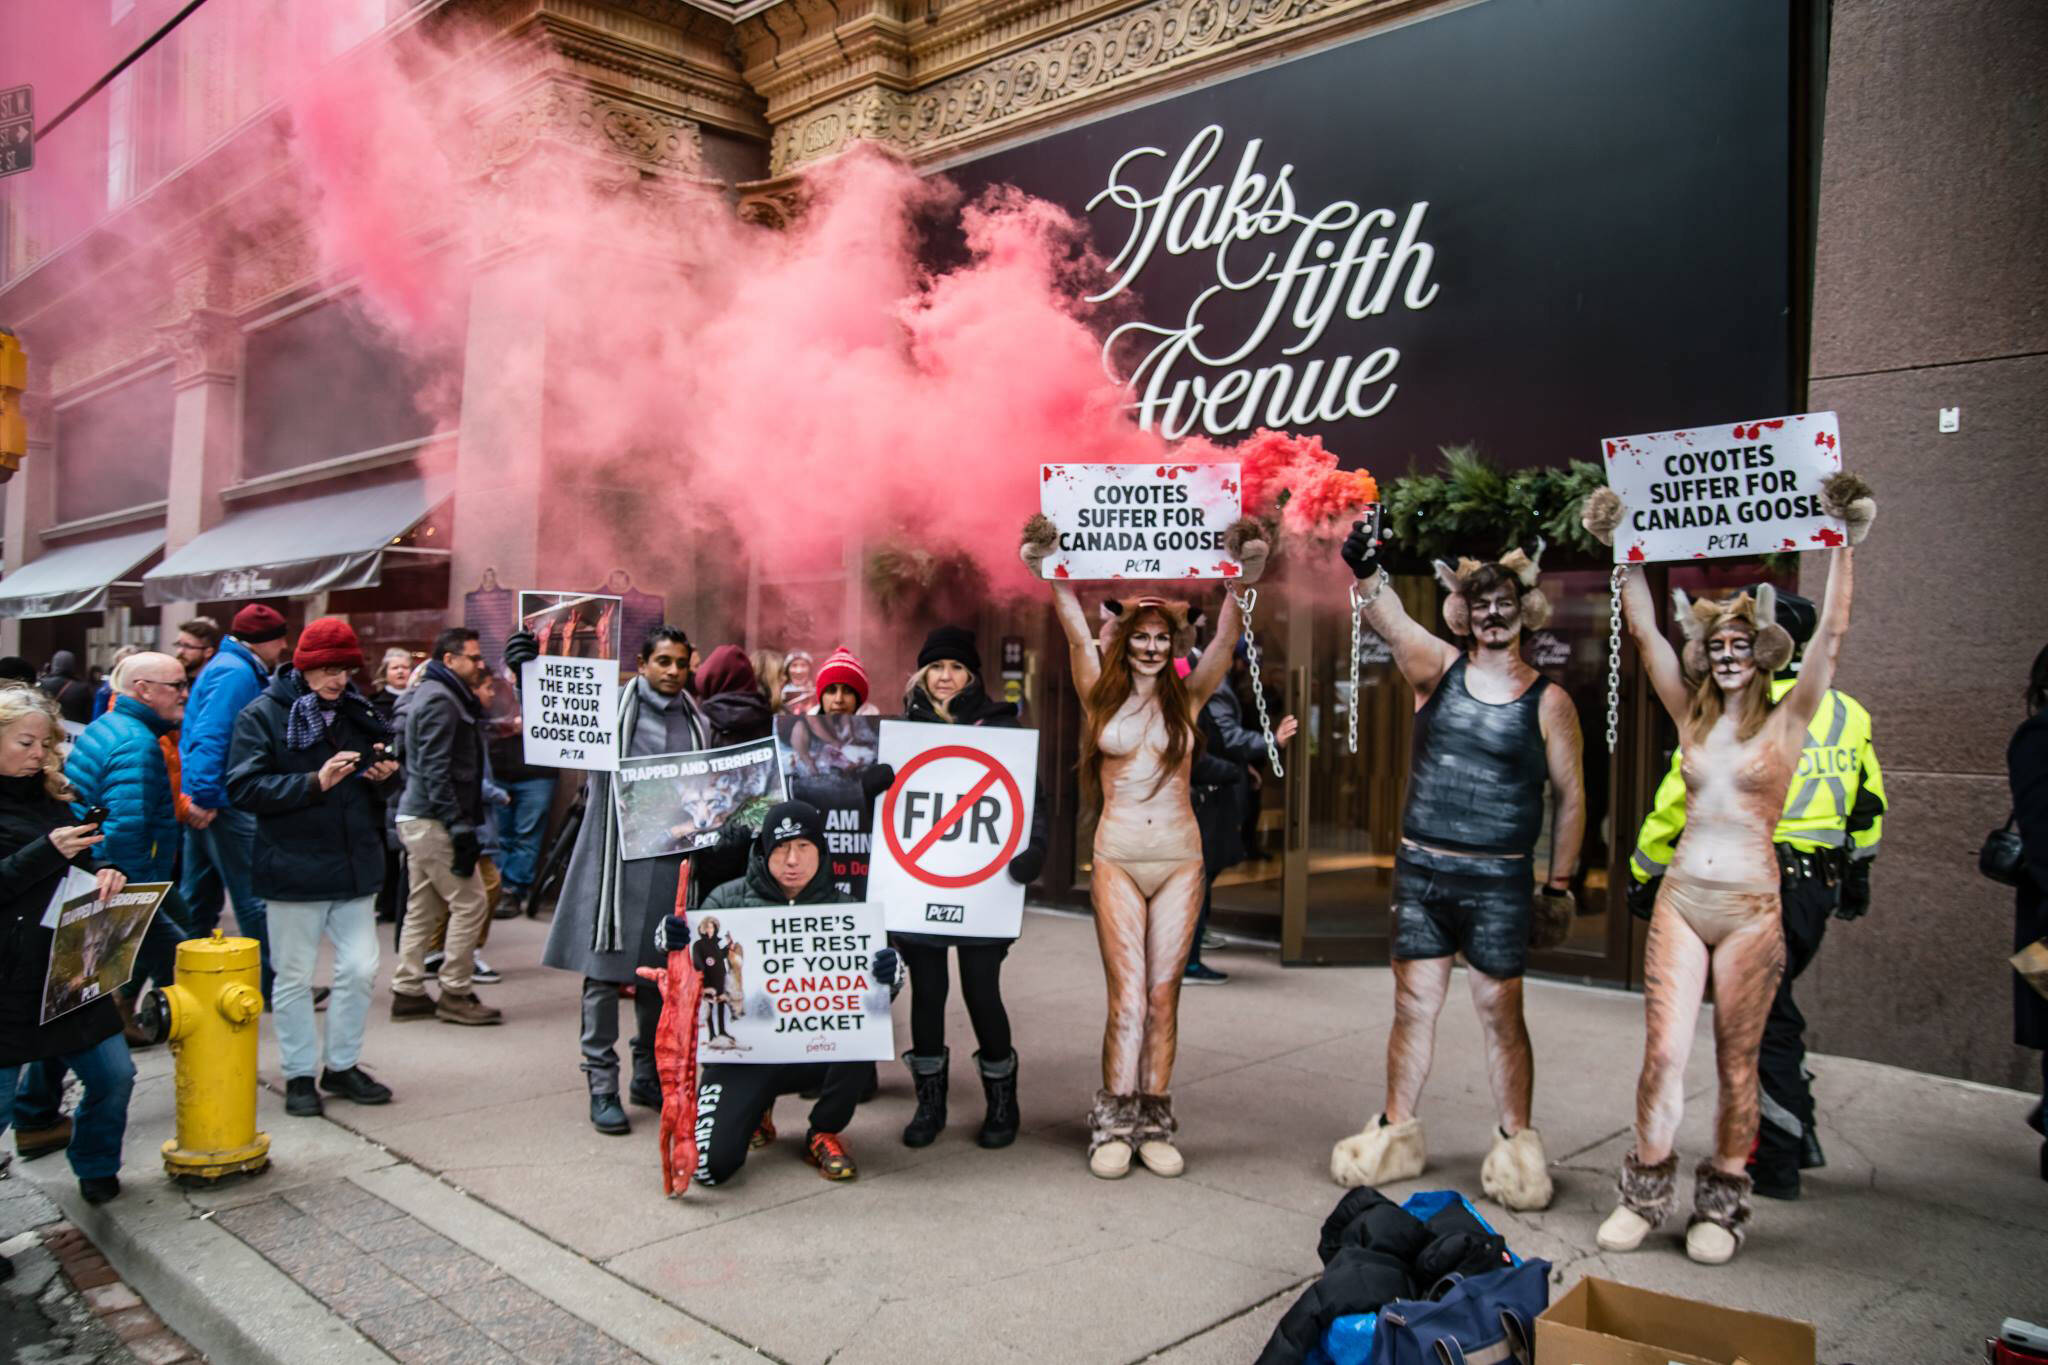 ed41d6a3315 Activists protesting Canada Goose startle shoppers across from Eaton ...